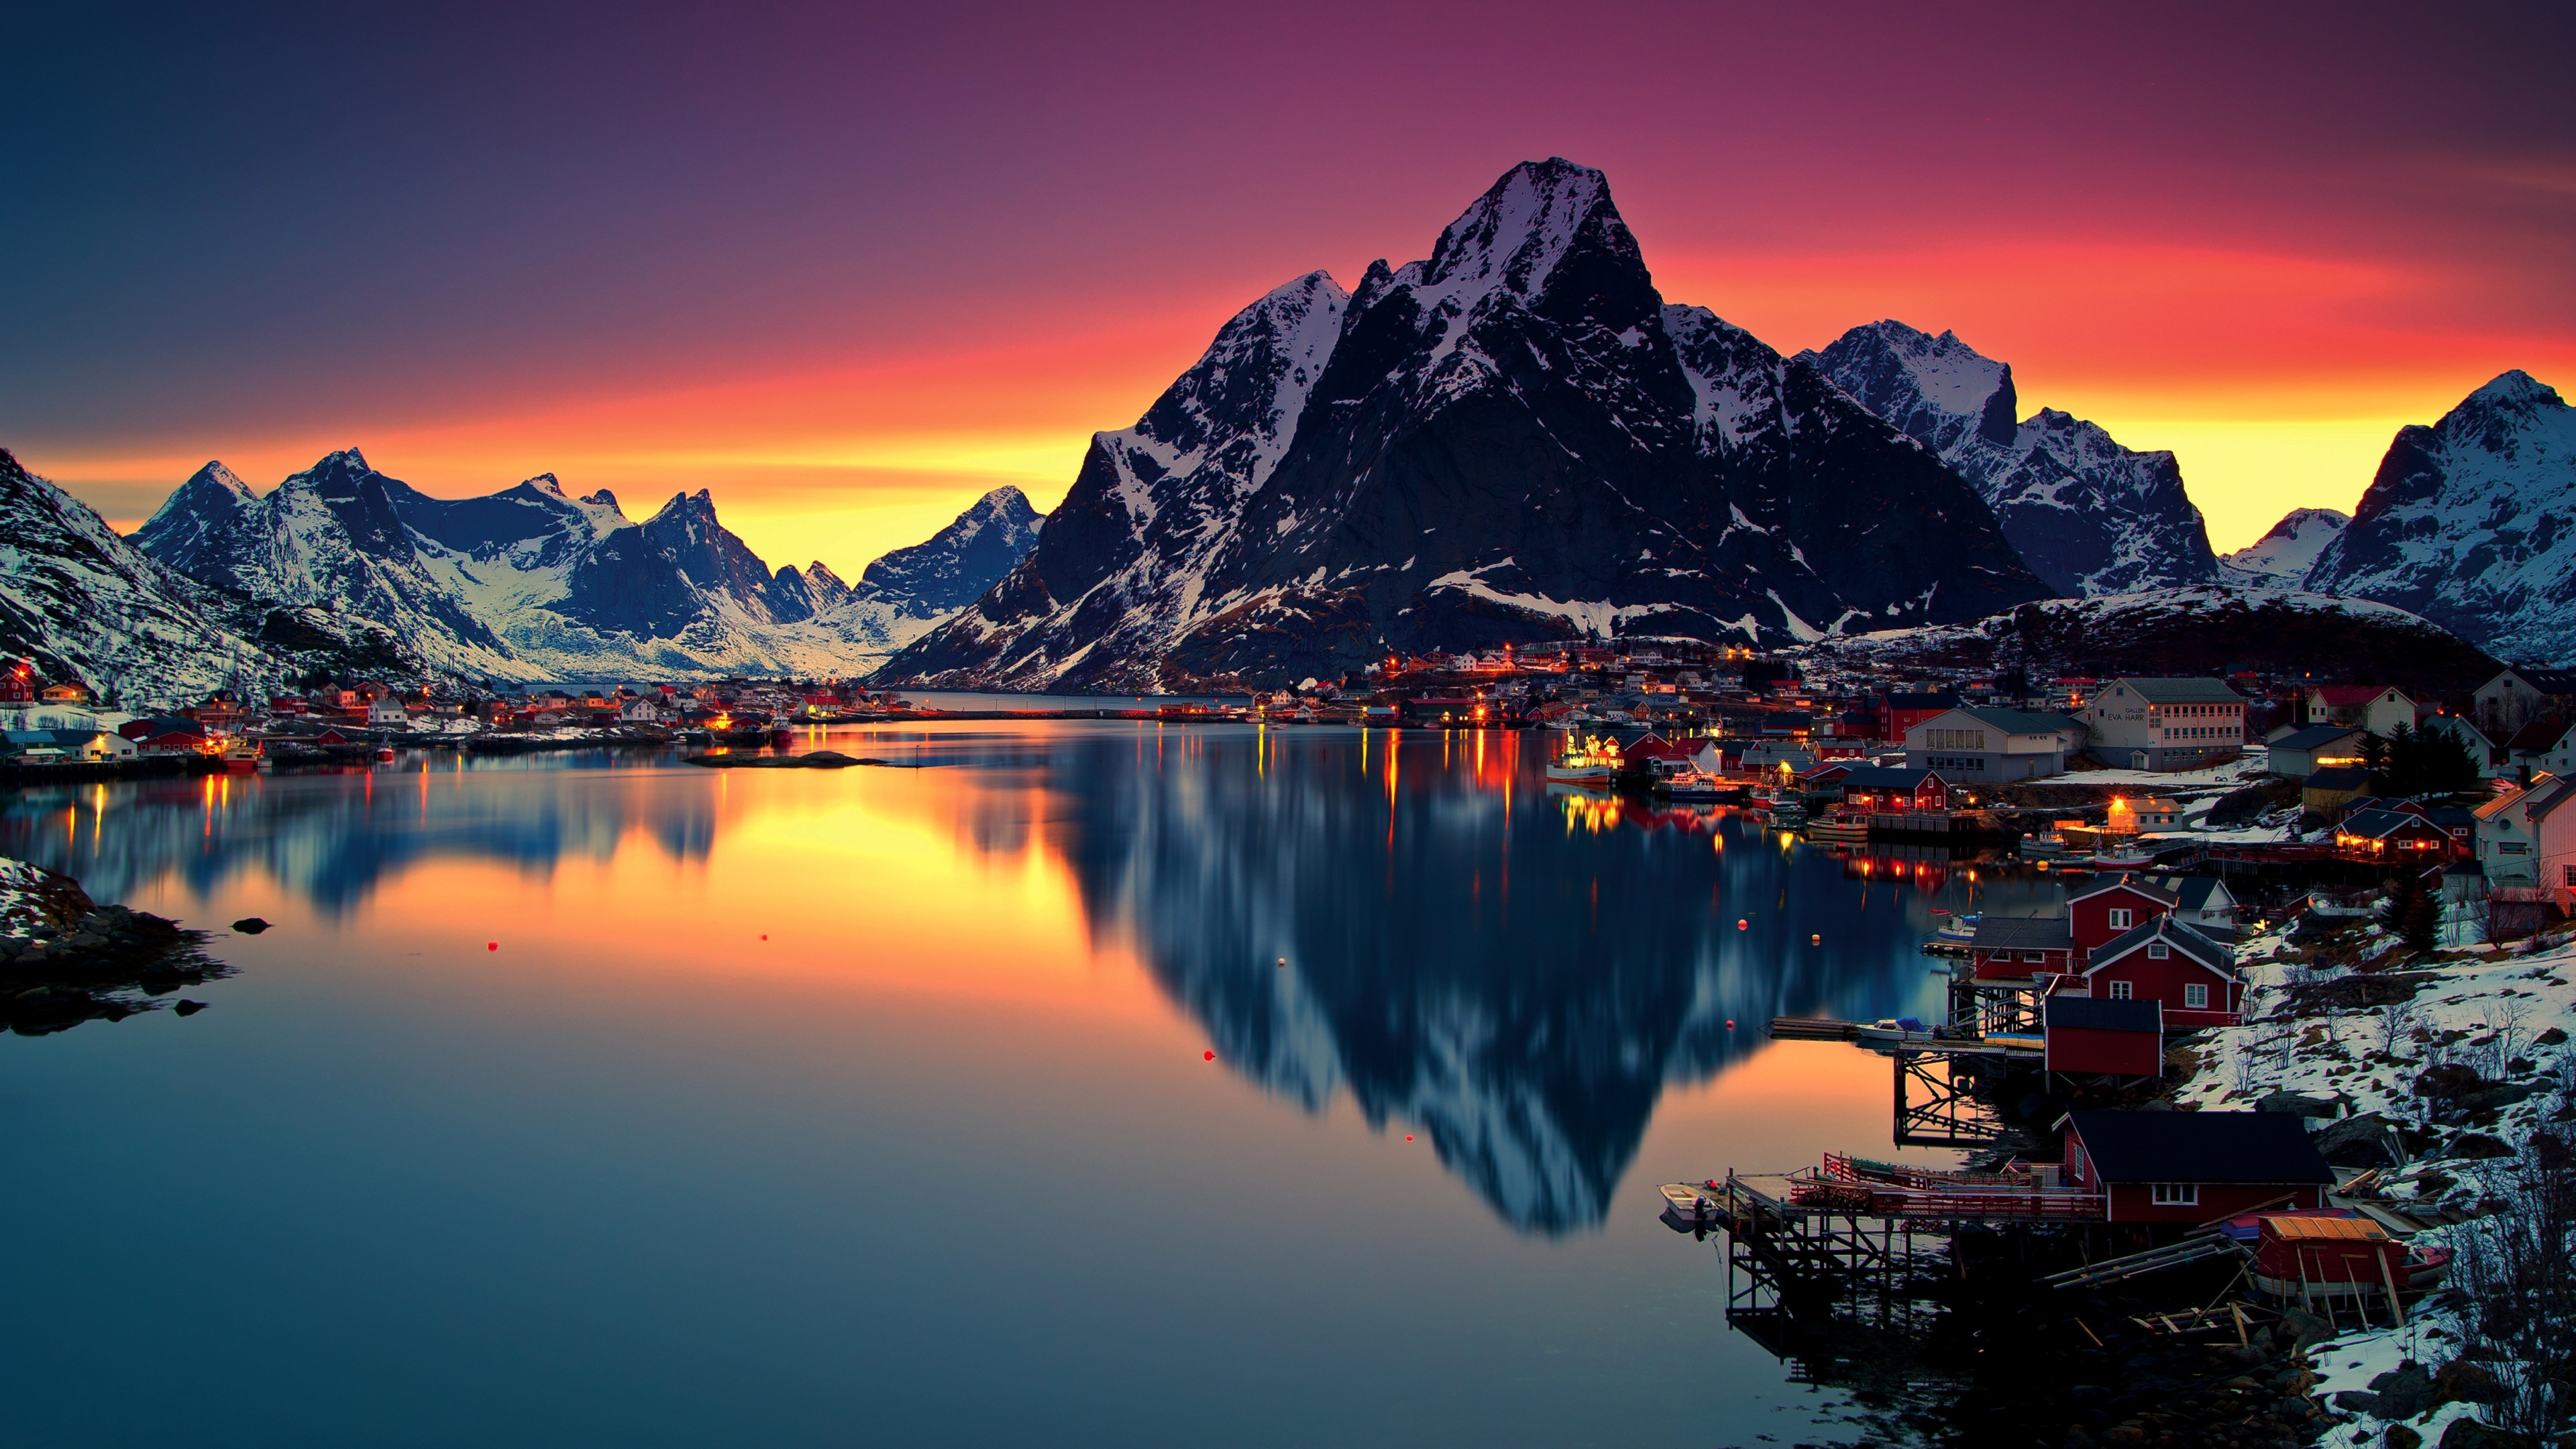 Lofoten Norway Wallpapers - 3840x2160 - 2225871: https://www.bhmpics.com/view-lofoten_norway-3840x2160.html